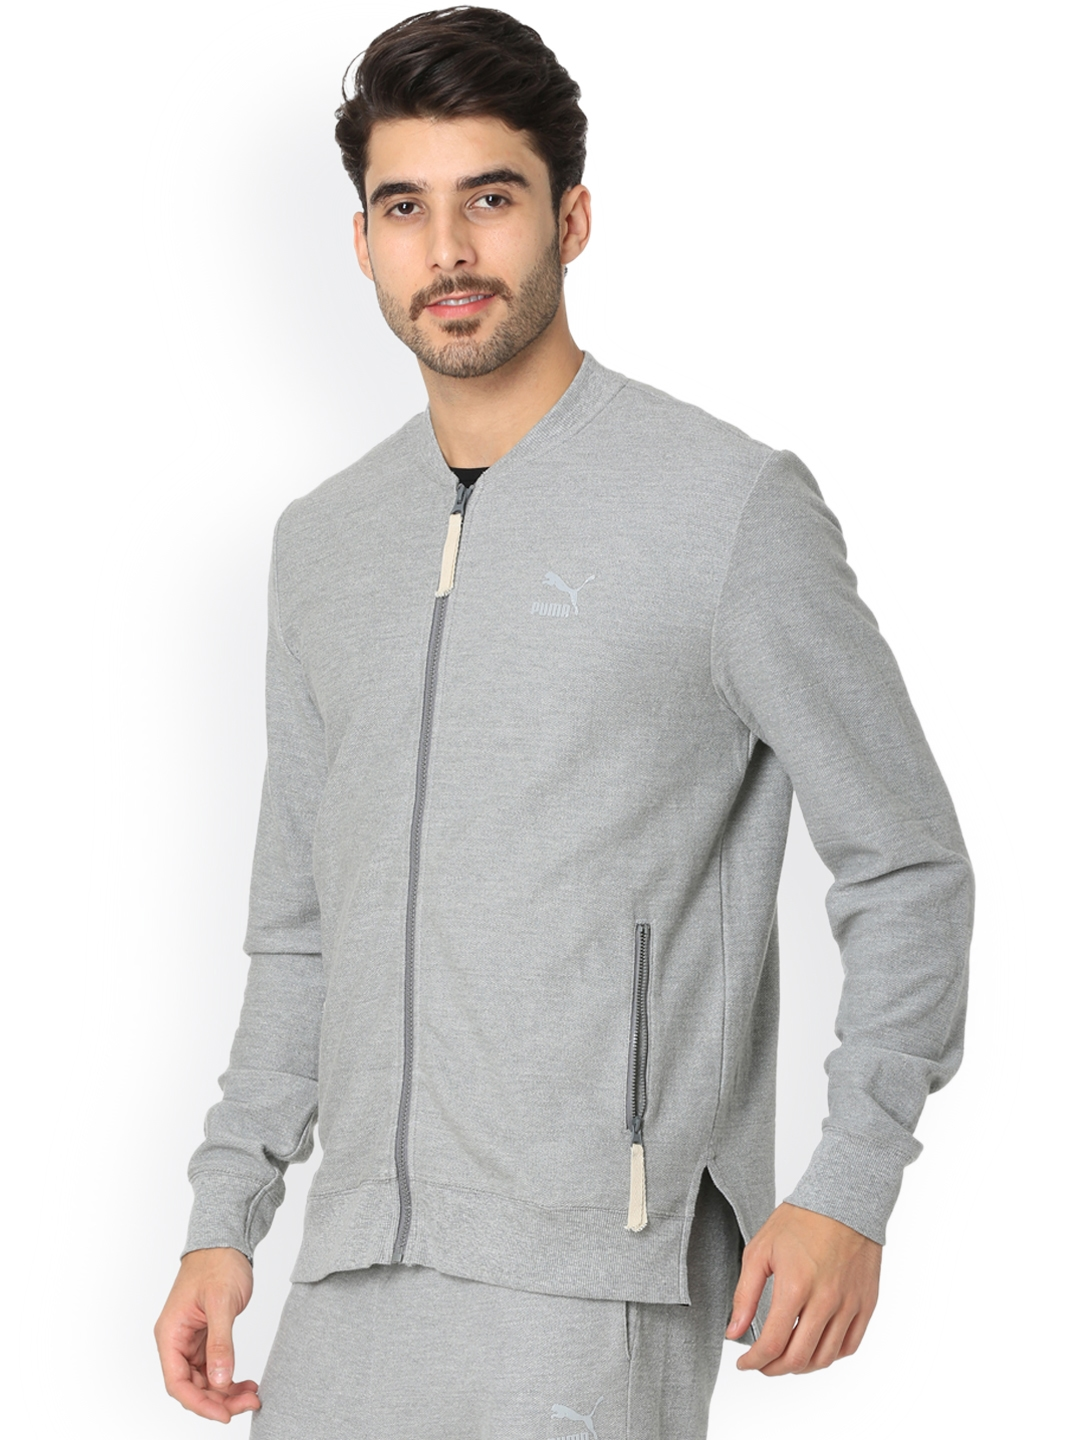 Buy One8 X PUMA Men Grey Solid Sporty Jacket - Jackets for Men ... 9d4ac860aaa